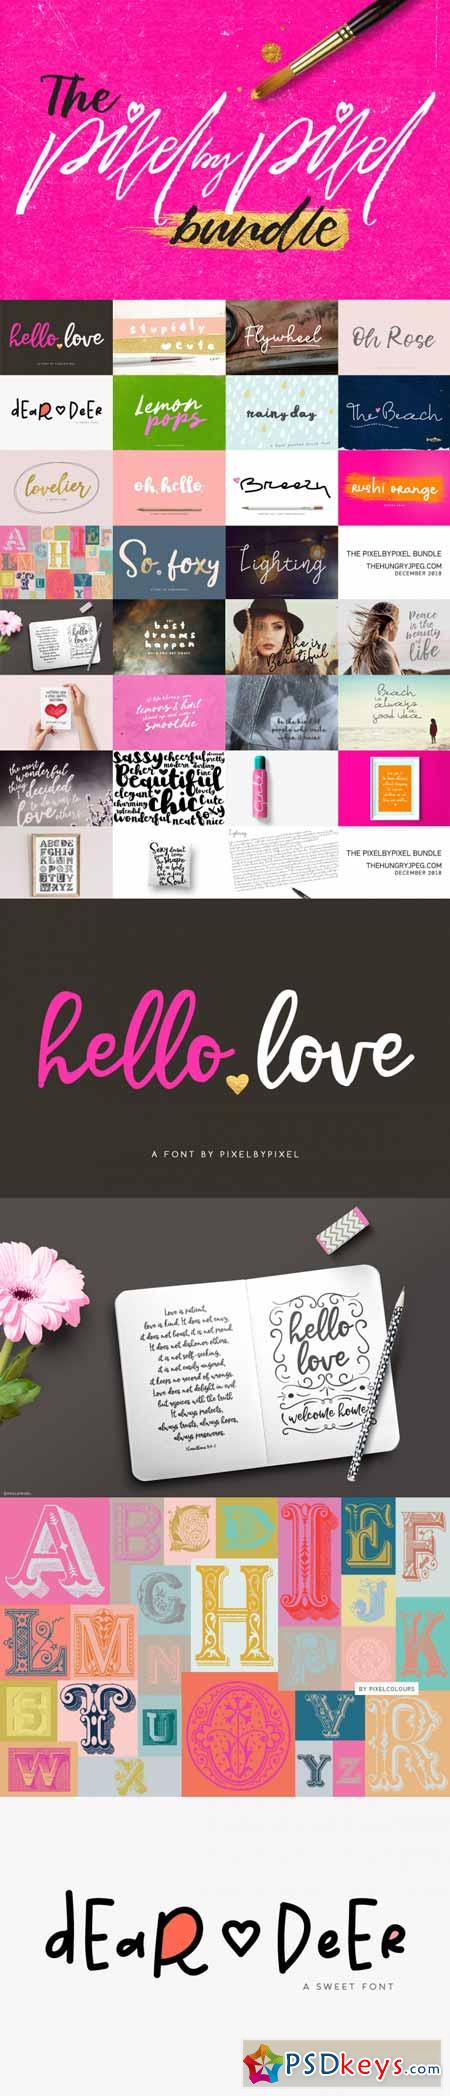 The Pixelbypixel Font Bundle 3515423